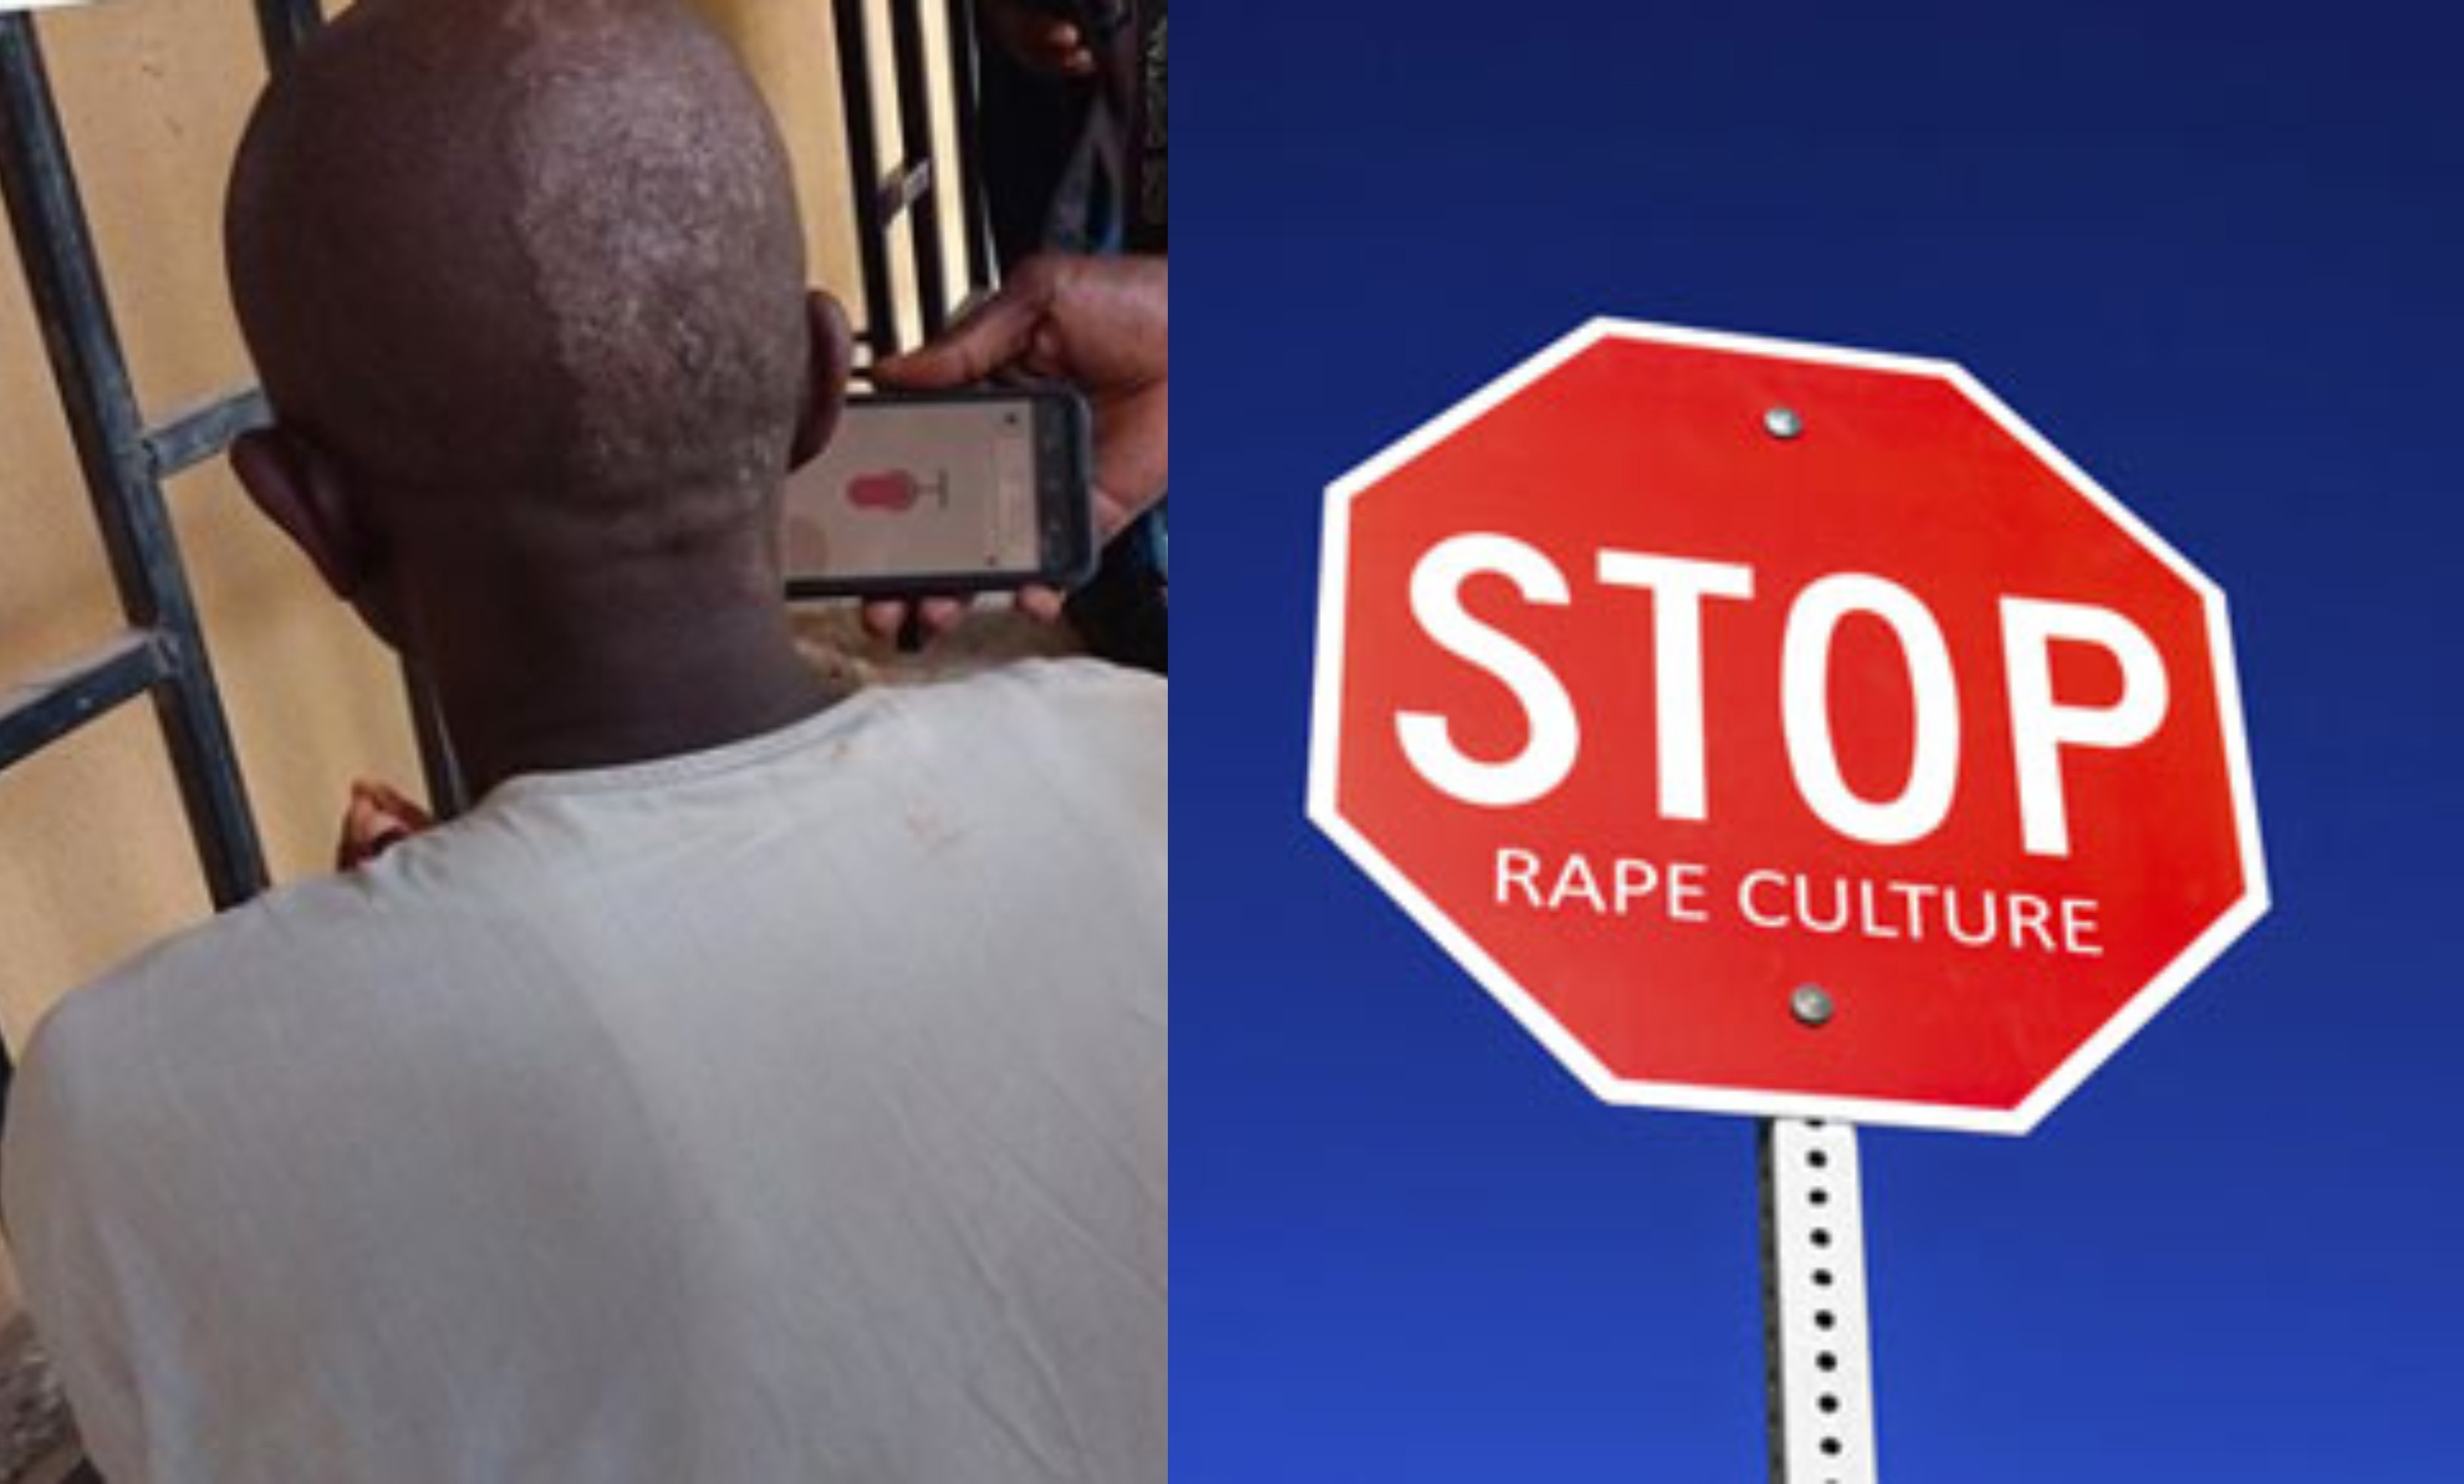 I started but I did not finish - 30-year-old suspect arrested for raping 9-year-old girl lindaikejisblog